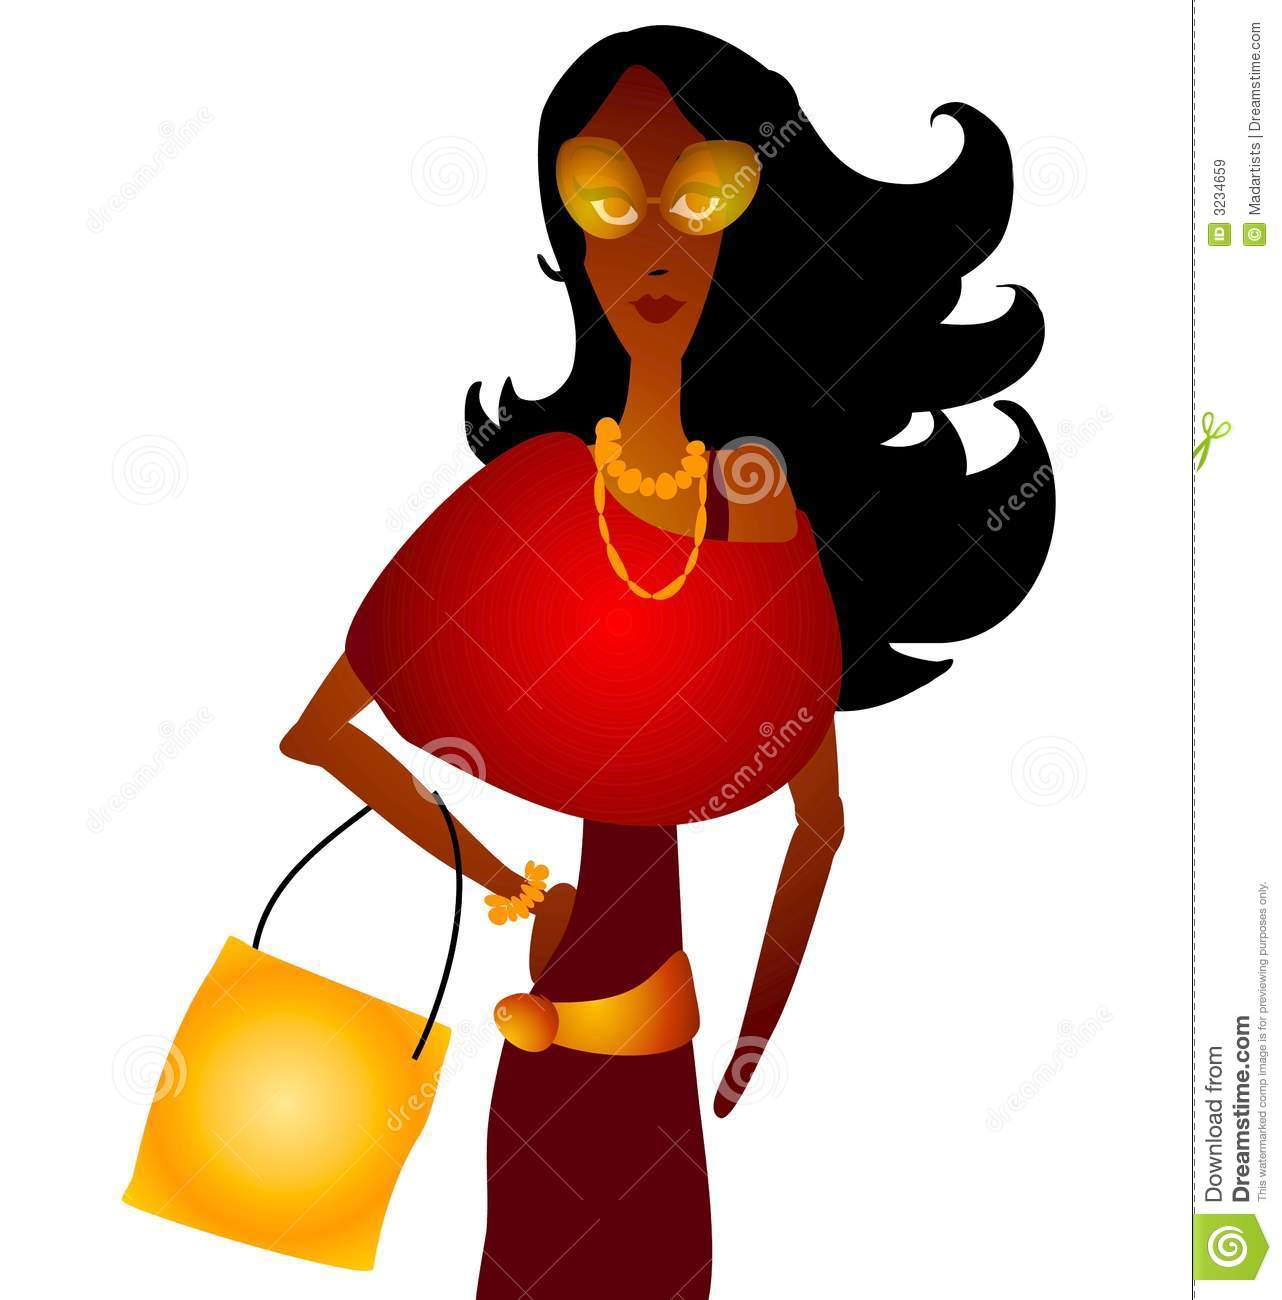 Fashion for women clip art - African American Art Clip Colors Fall Fashion Fashions Illustration Shopping Wearing Woman